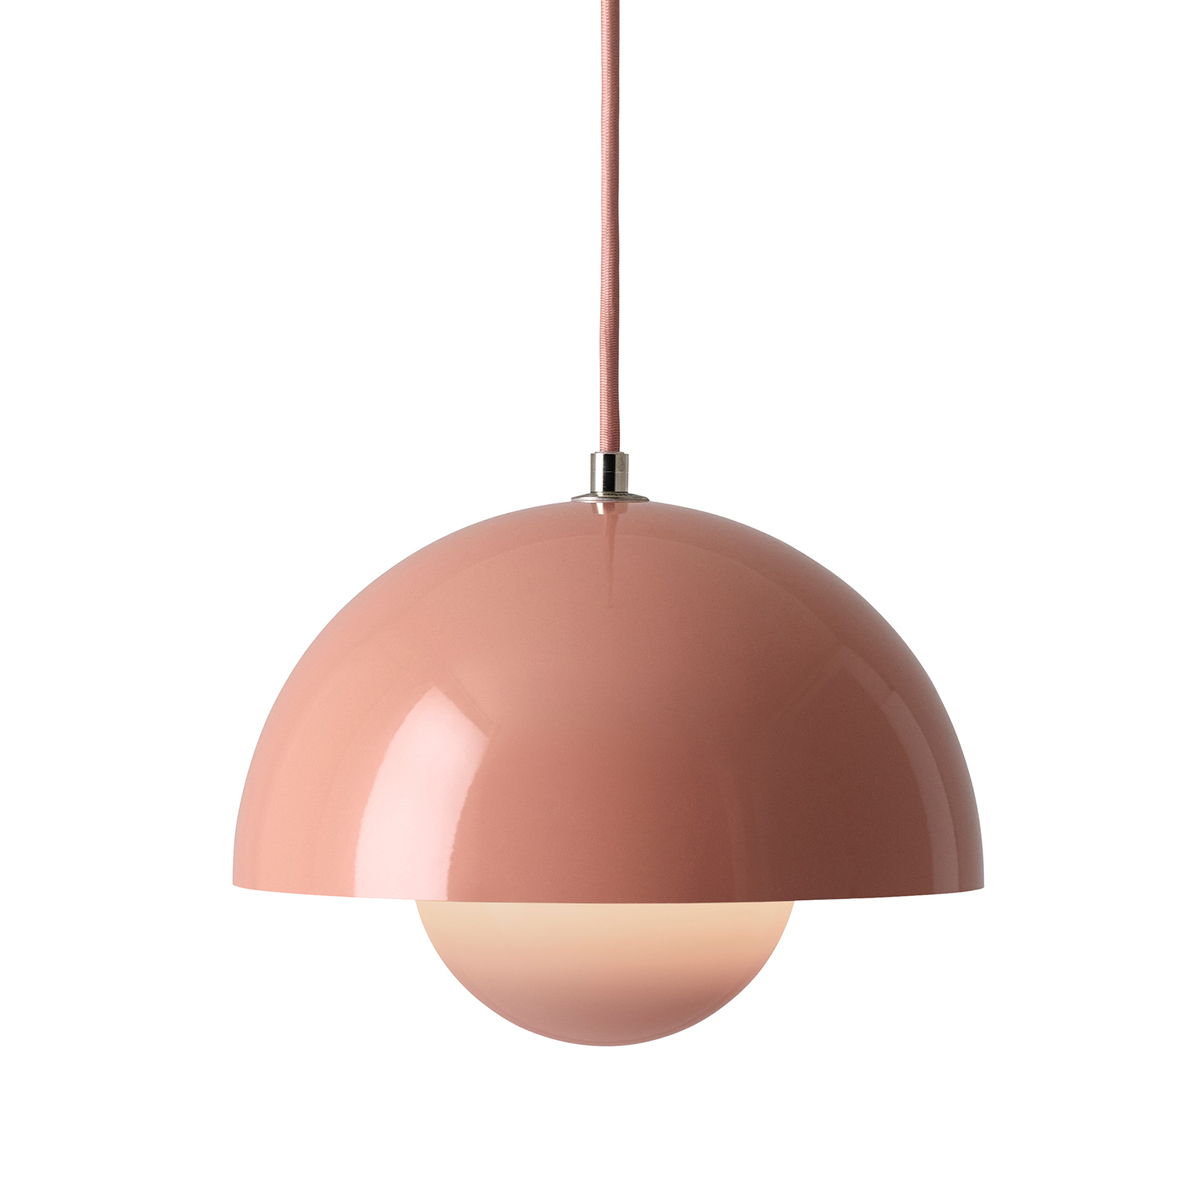 &Tradition Flowerpot VP1 pendant, beige red from &Tradition